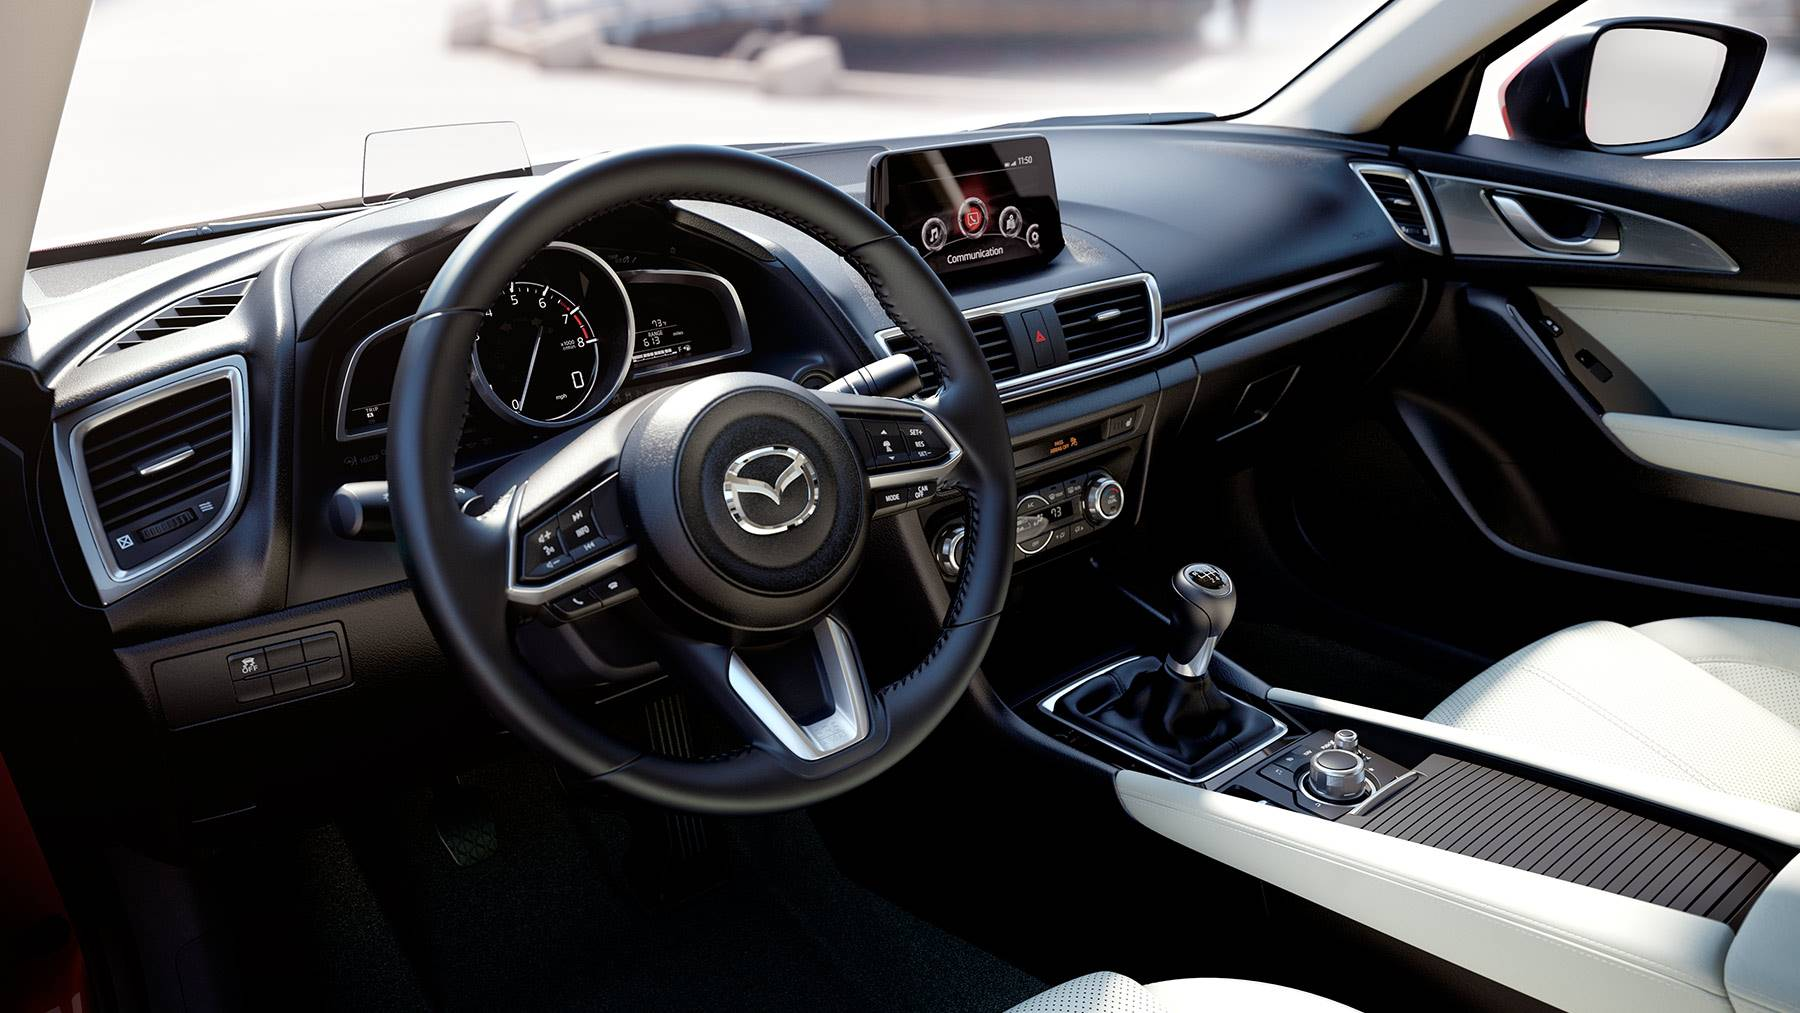 You'll Love Driving in the Mazda3!